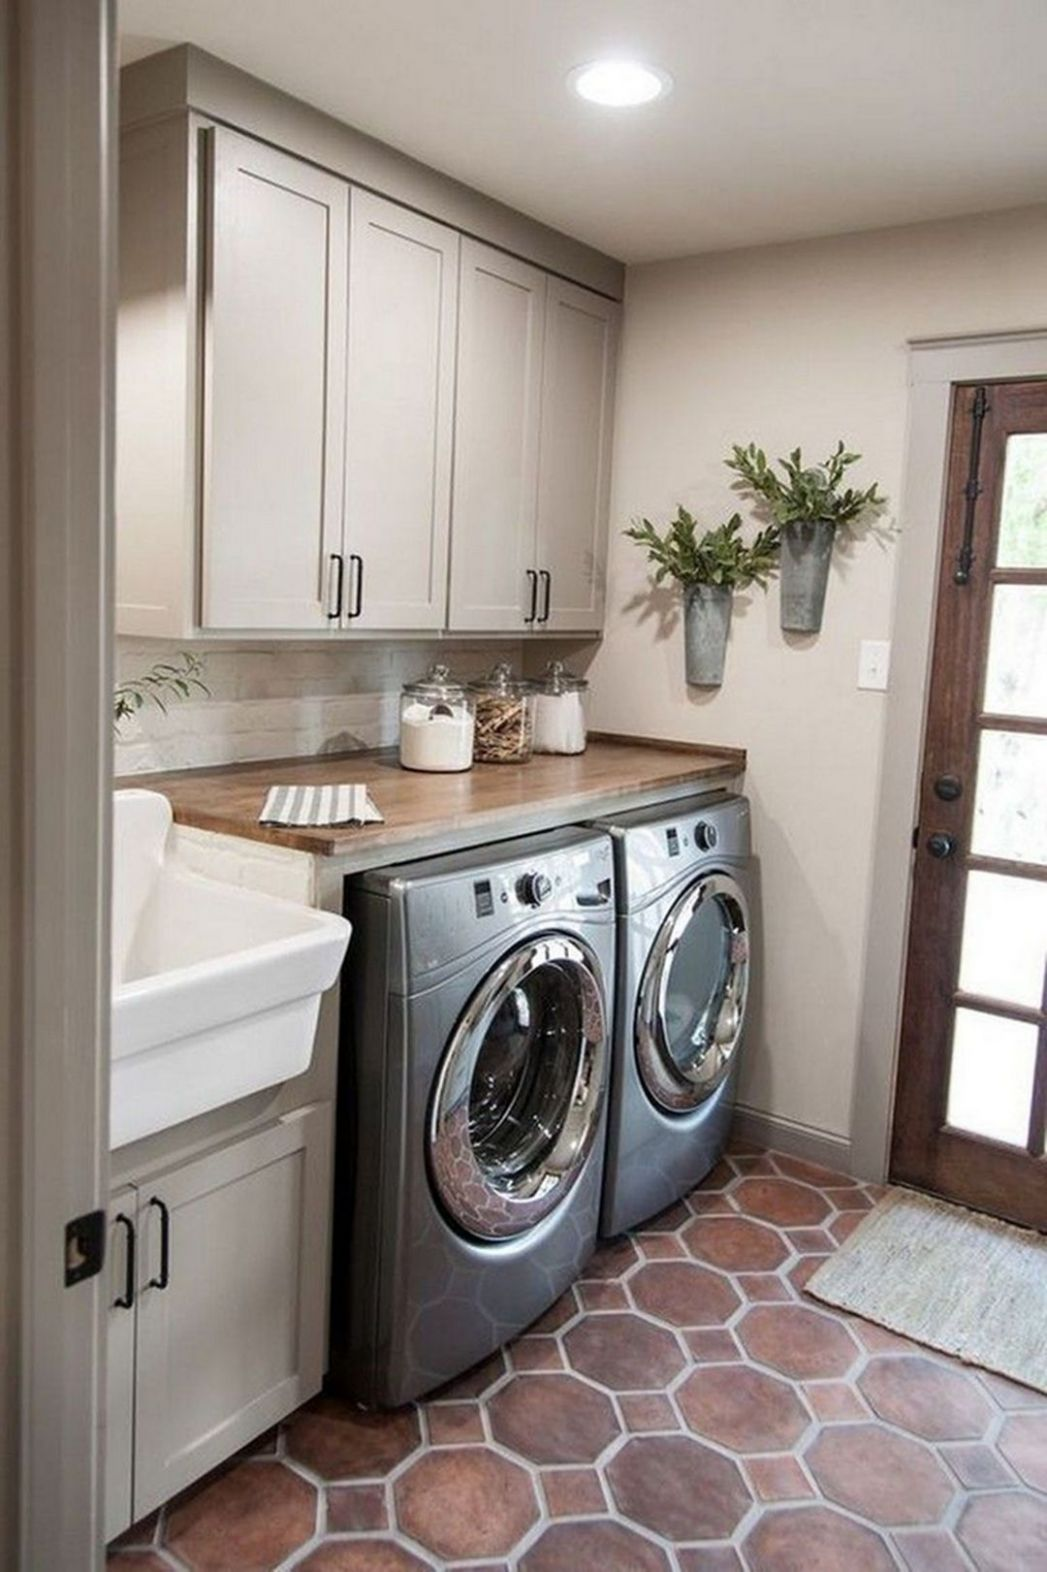 12+ Trendy Small Laundry Room Design Ideas To Try Asap - GAGOHOME - laundry room remodel ideas